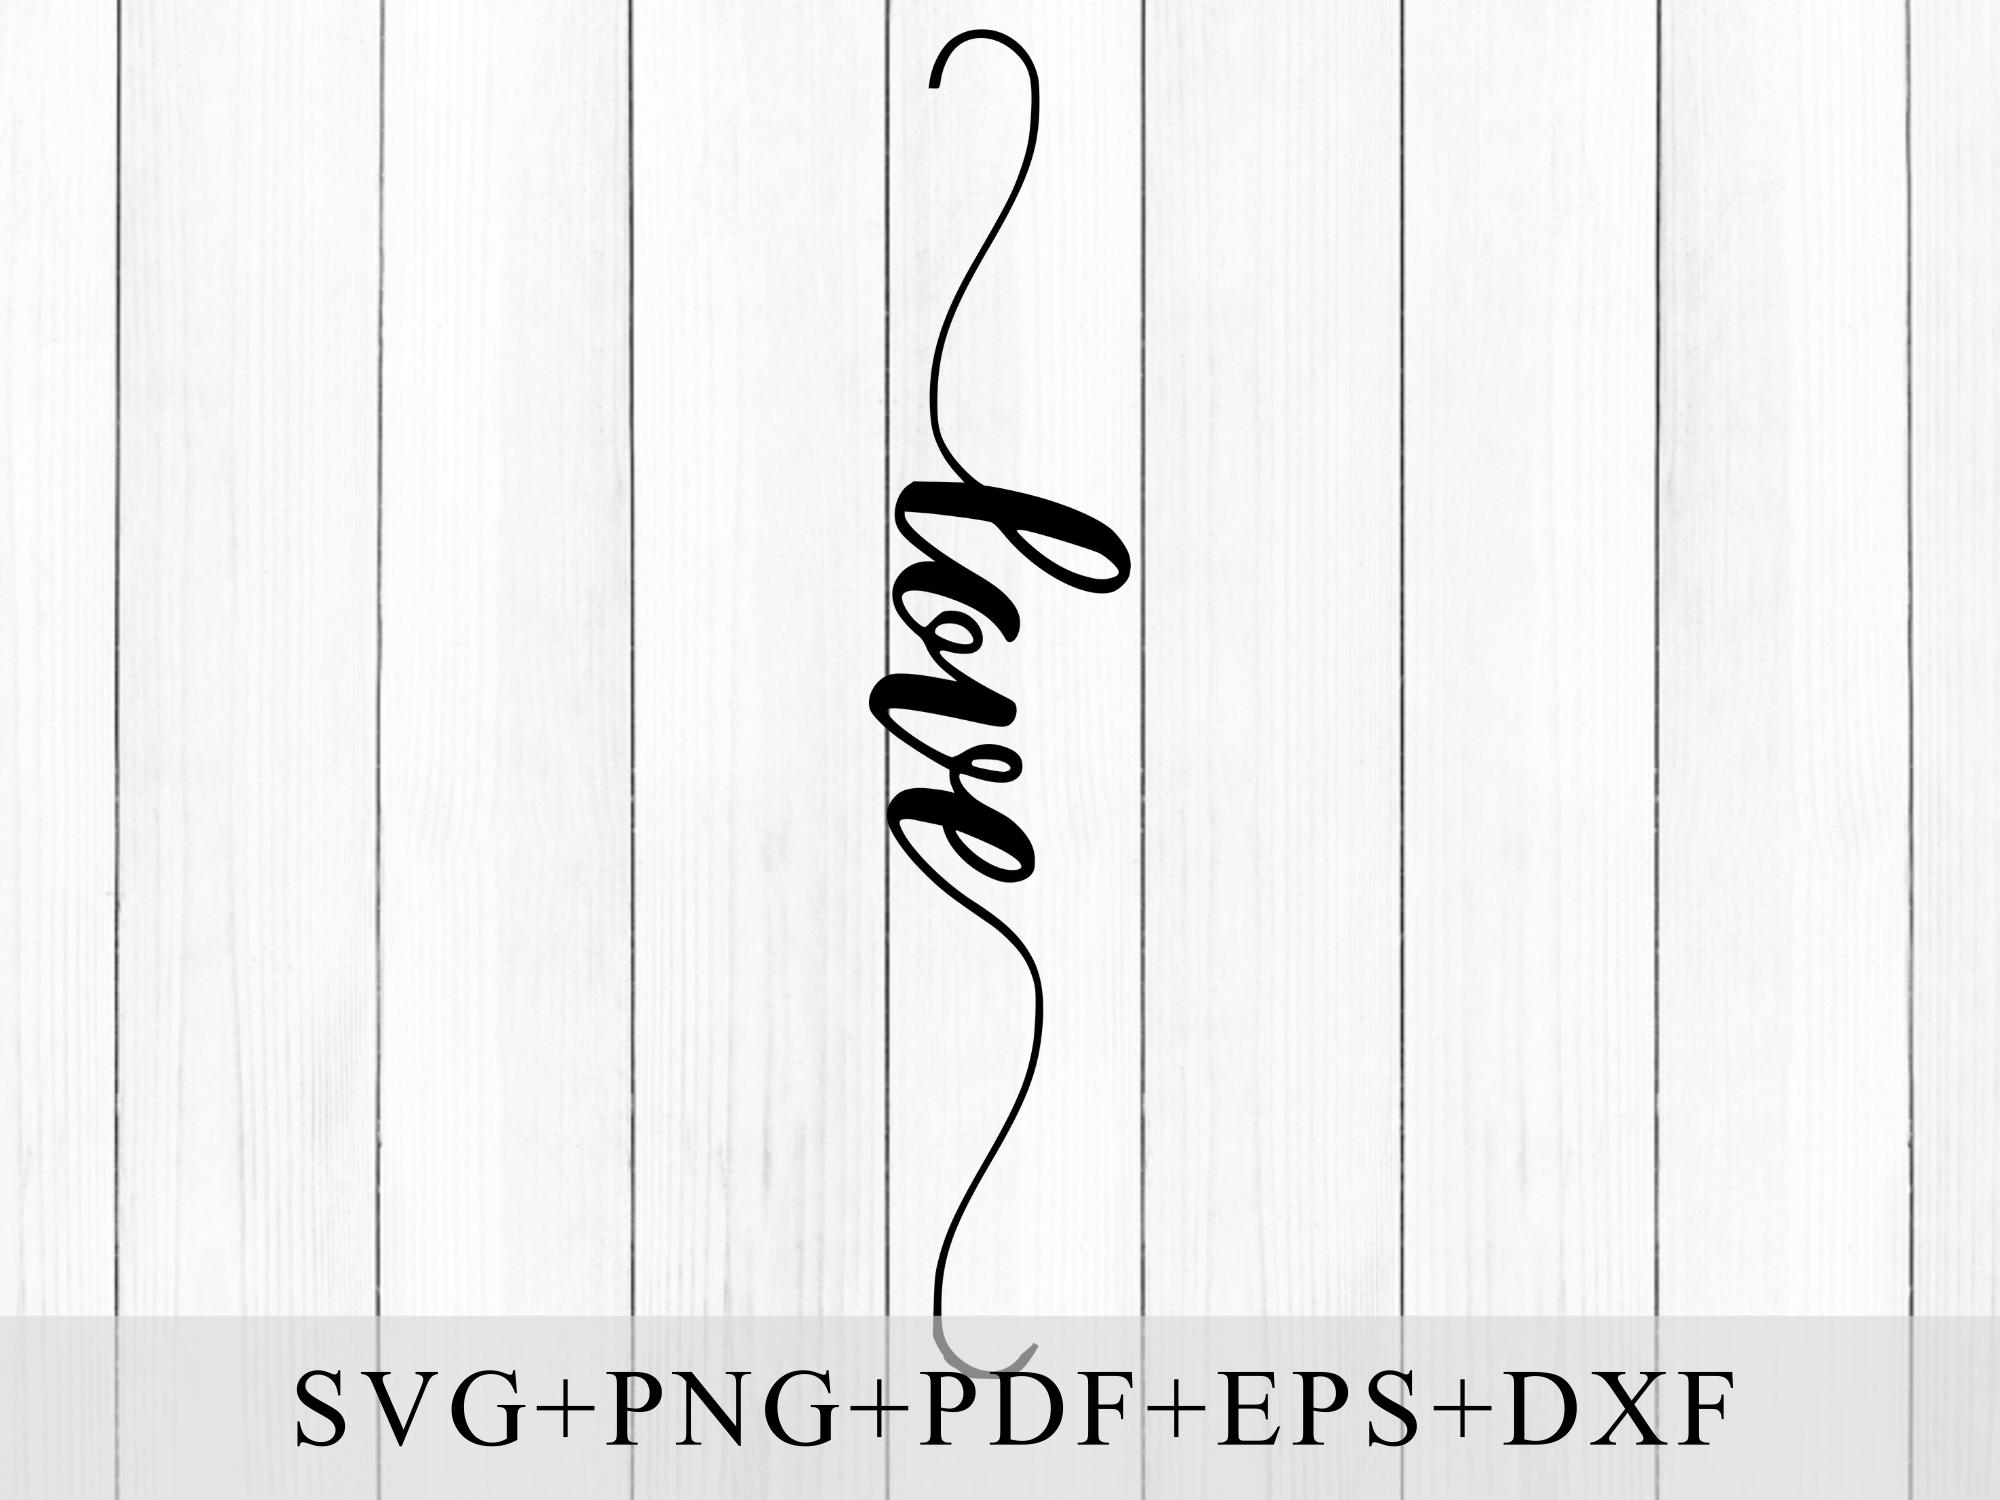 Handwritten Love Script Type SVG (Graphic) by Mockup Venue